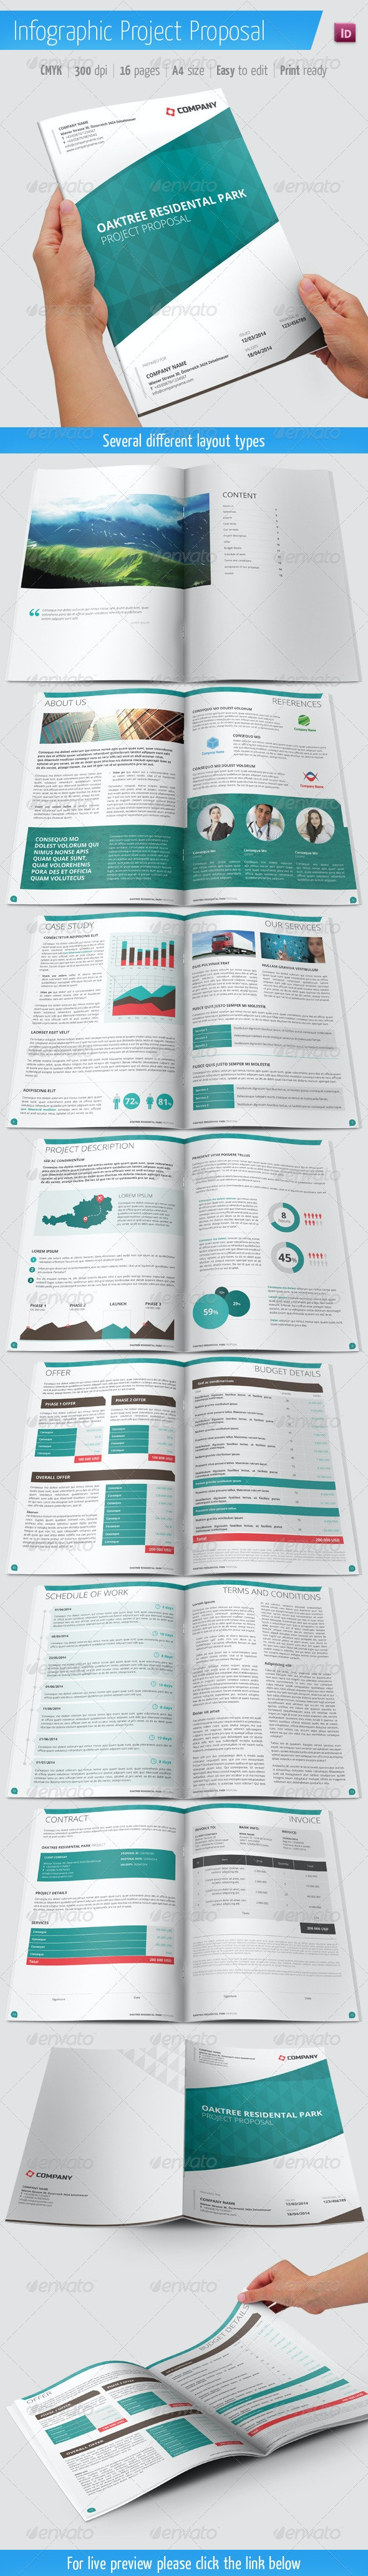 Project Proposal With Infographic Elements - Proposals & Invoices Stationery